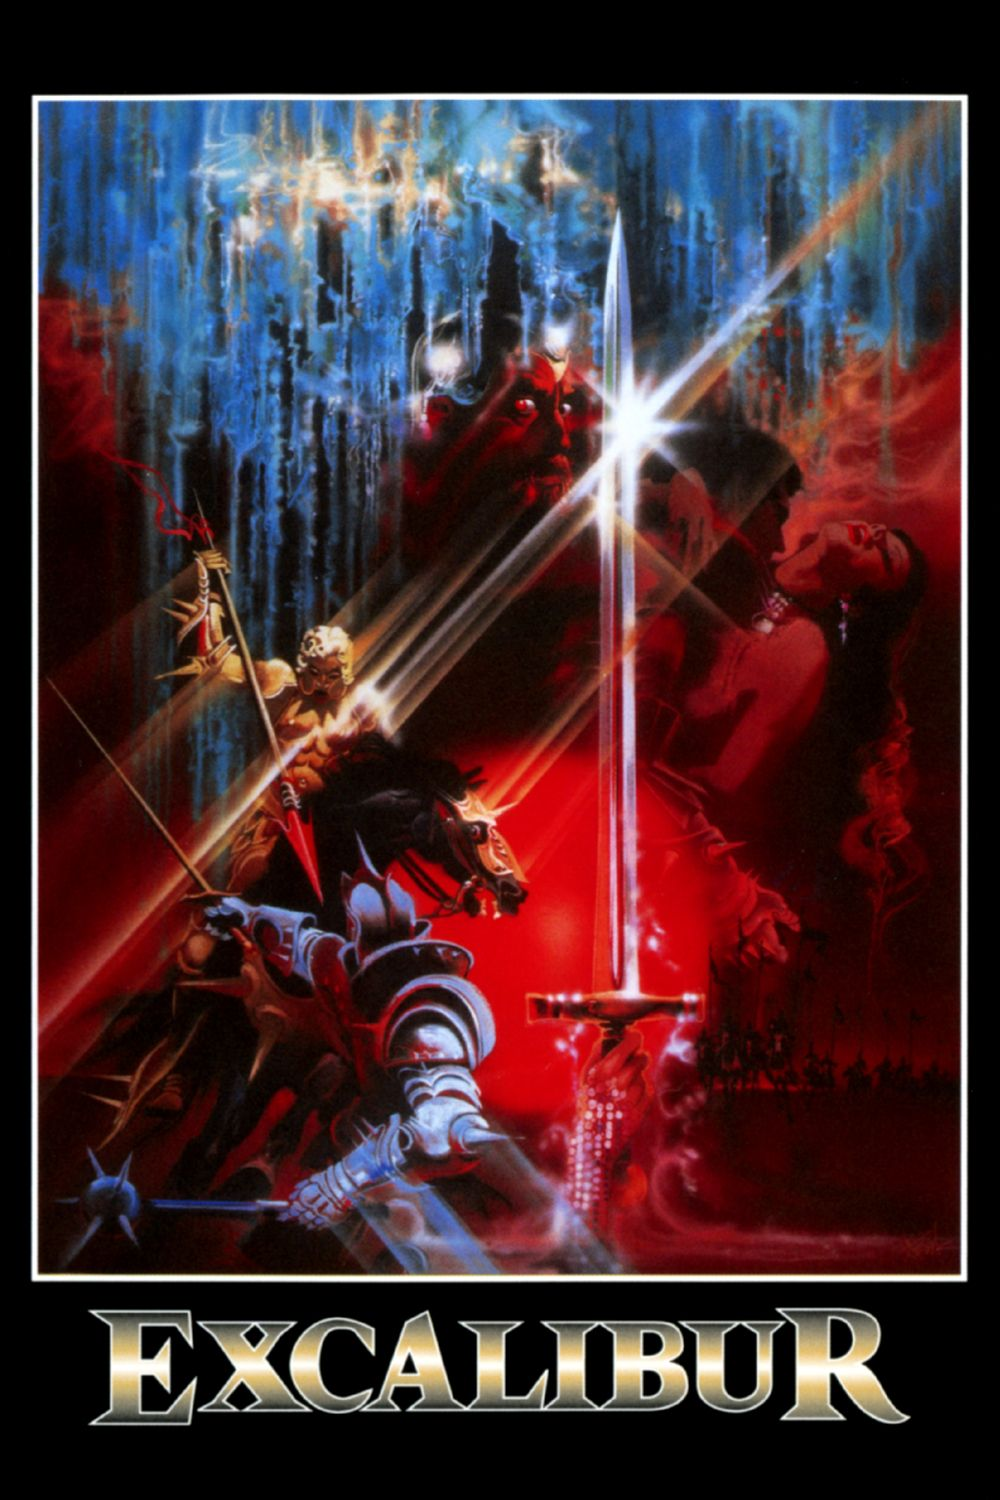 Excalibur Movie poster art, Bob peak, Poster art